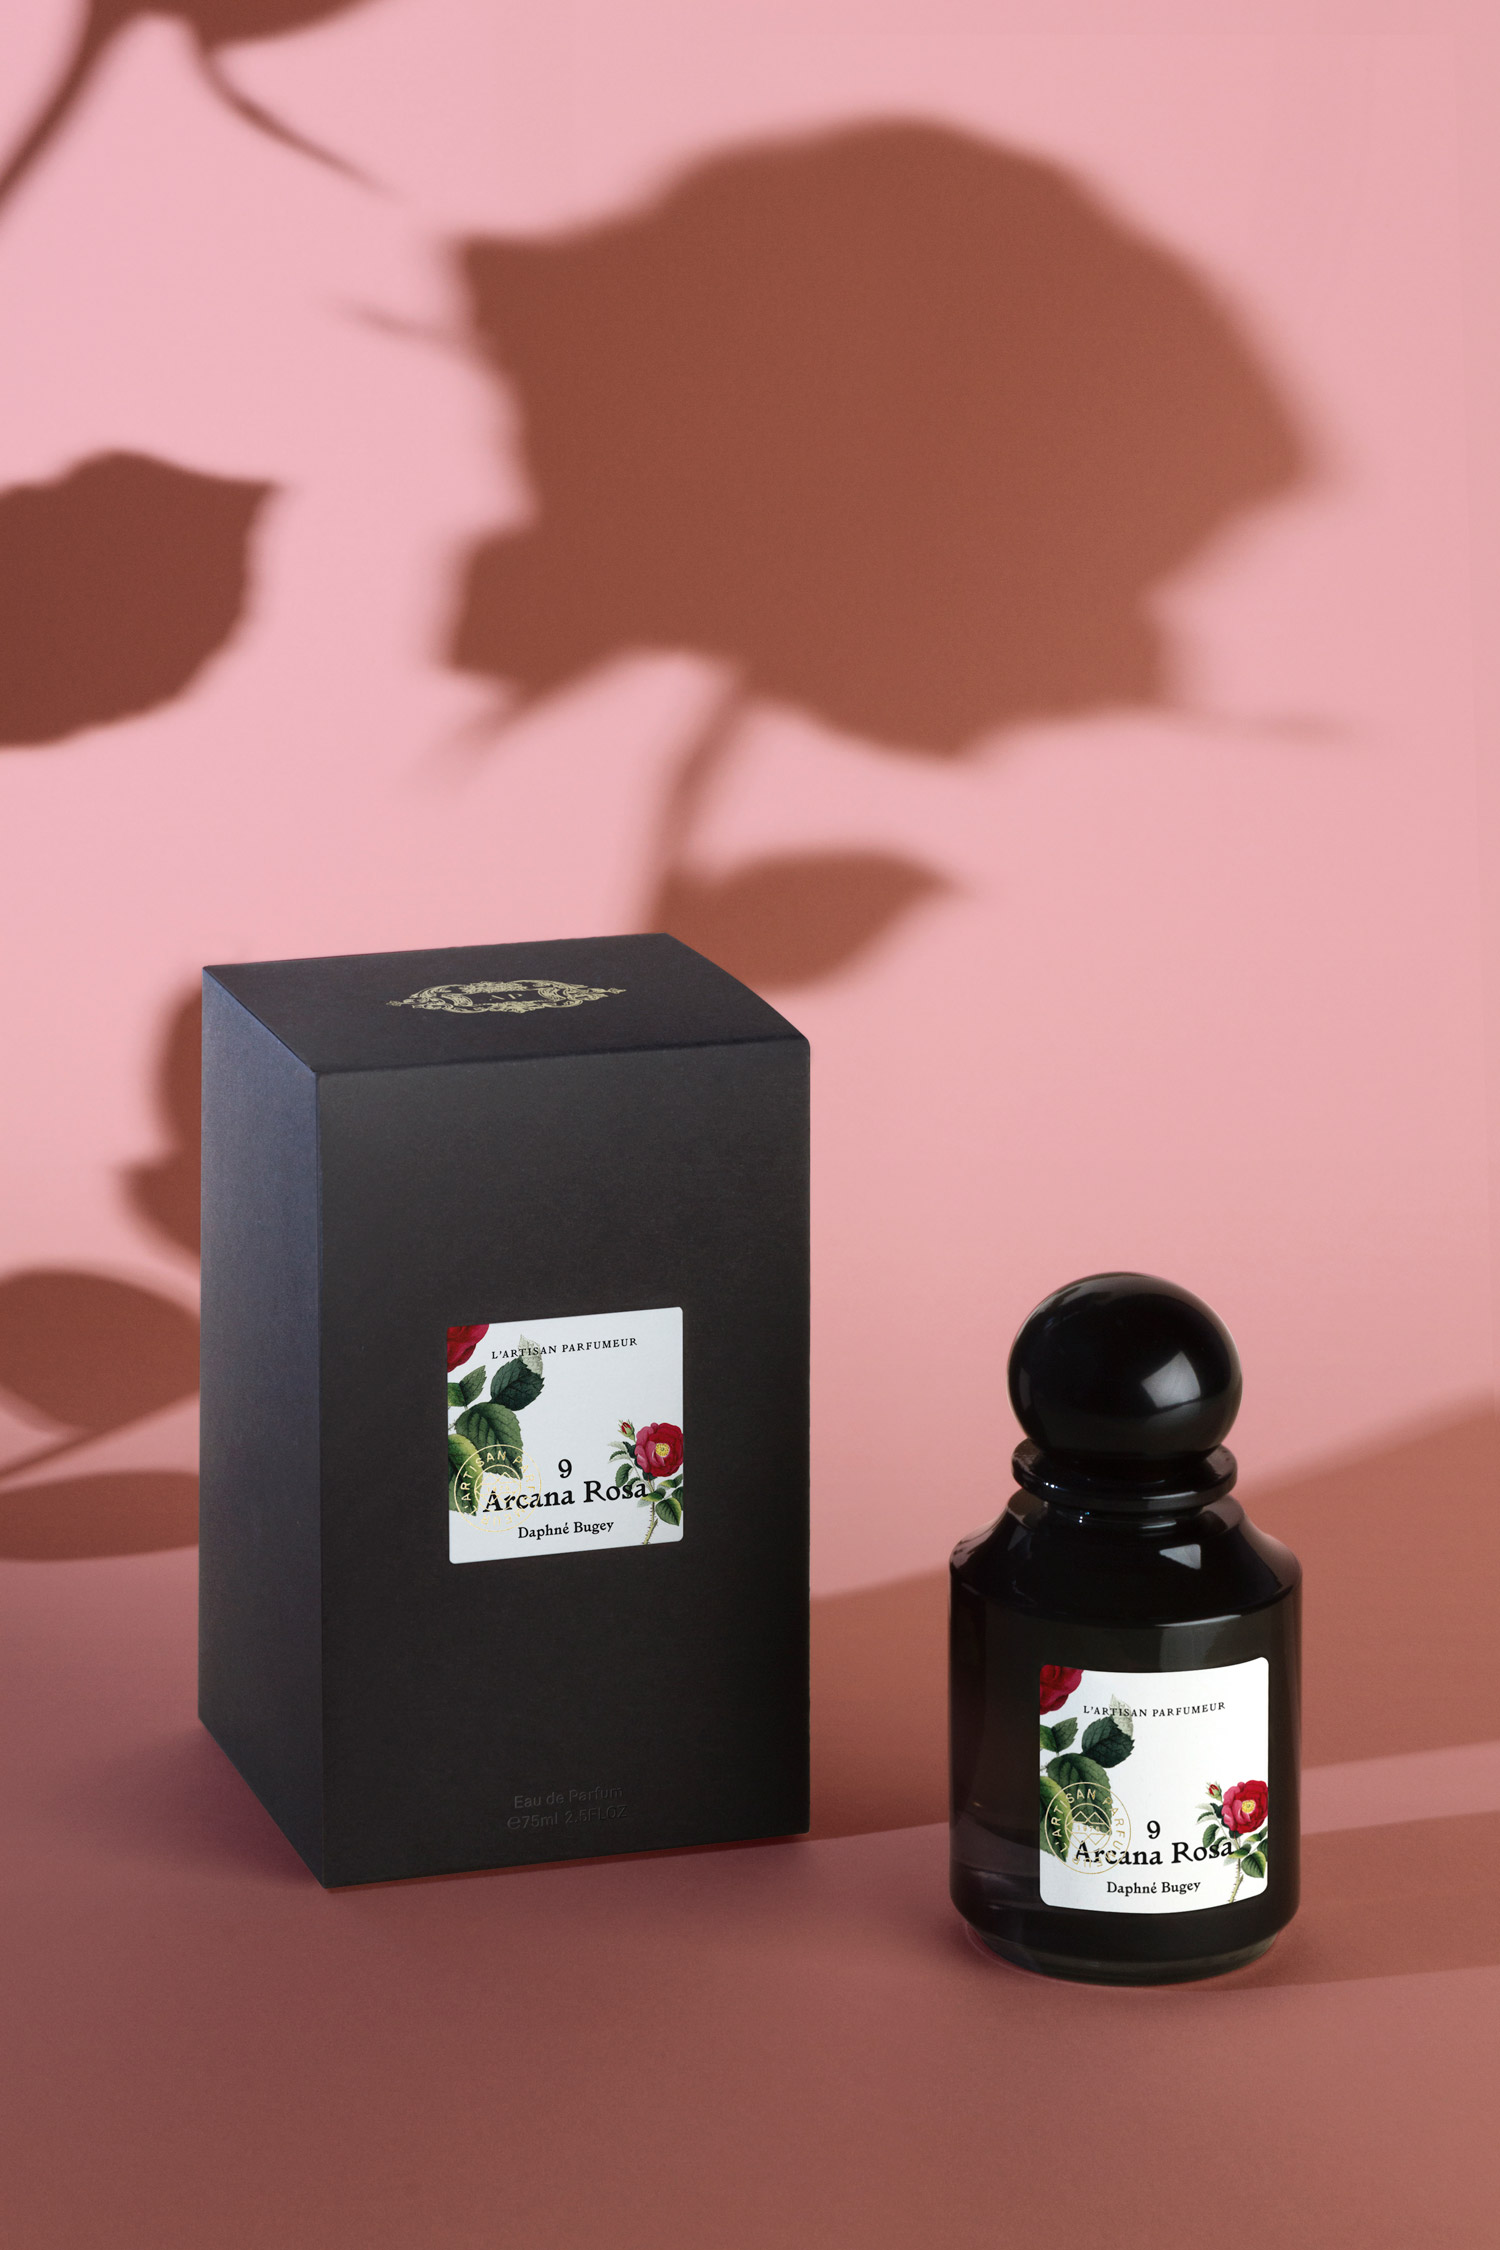 Arcana Rosa - La Botanique packaging design